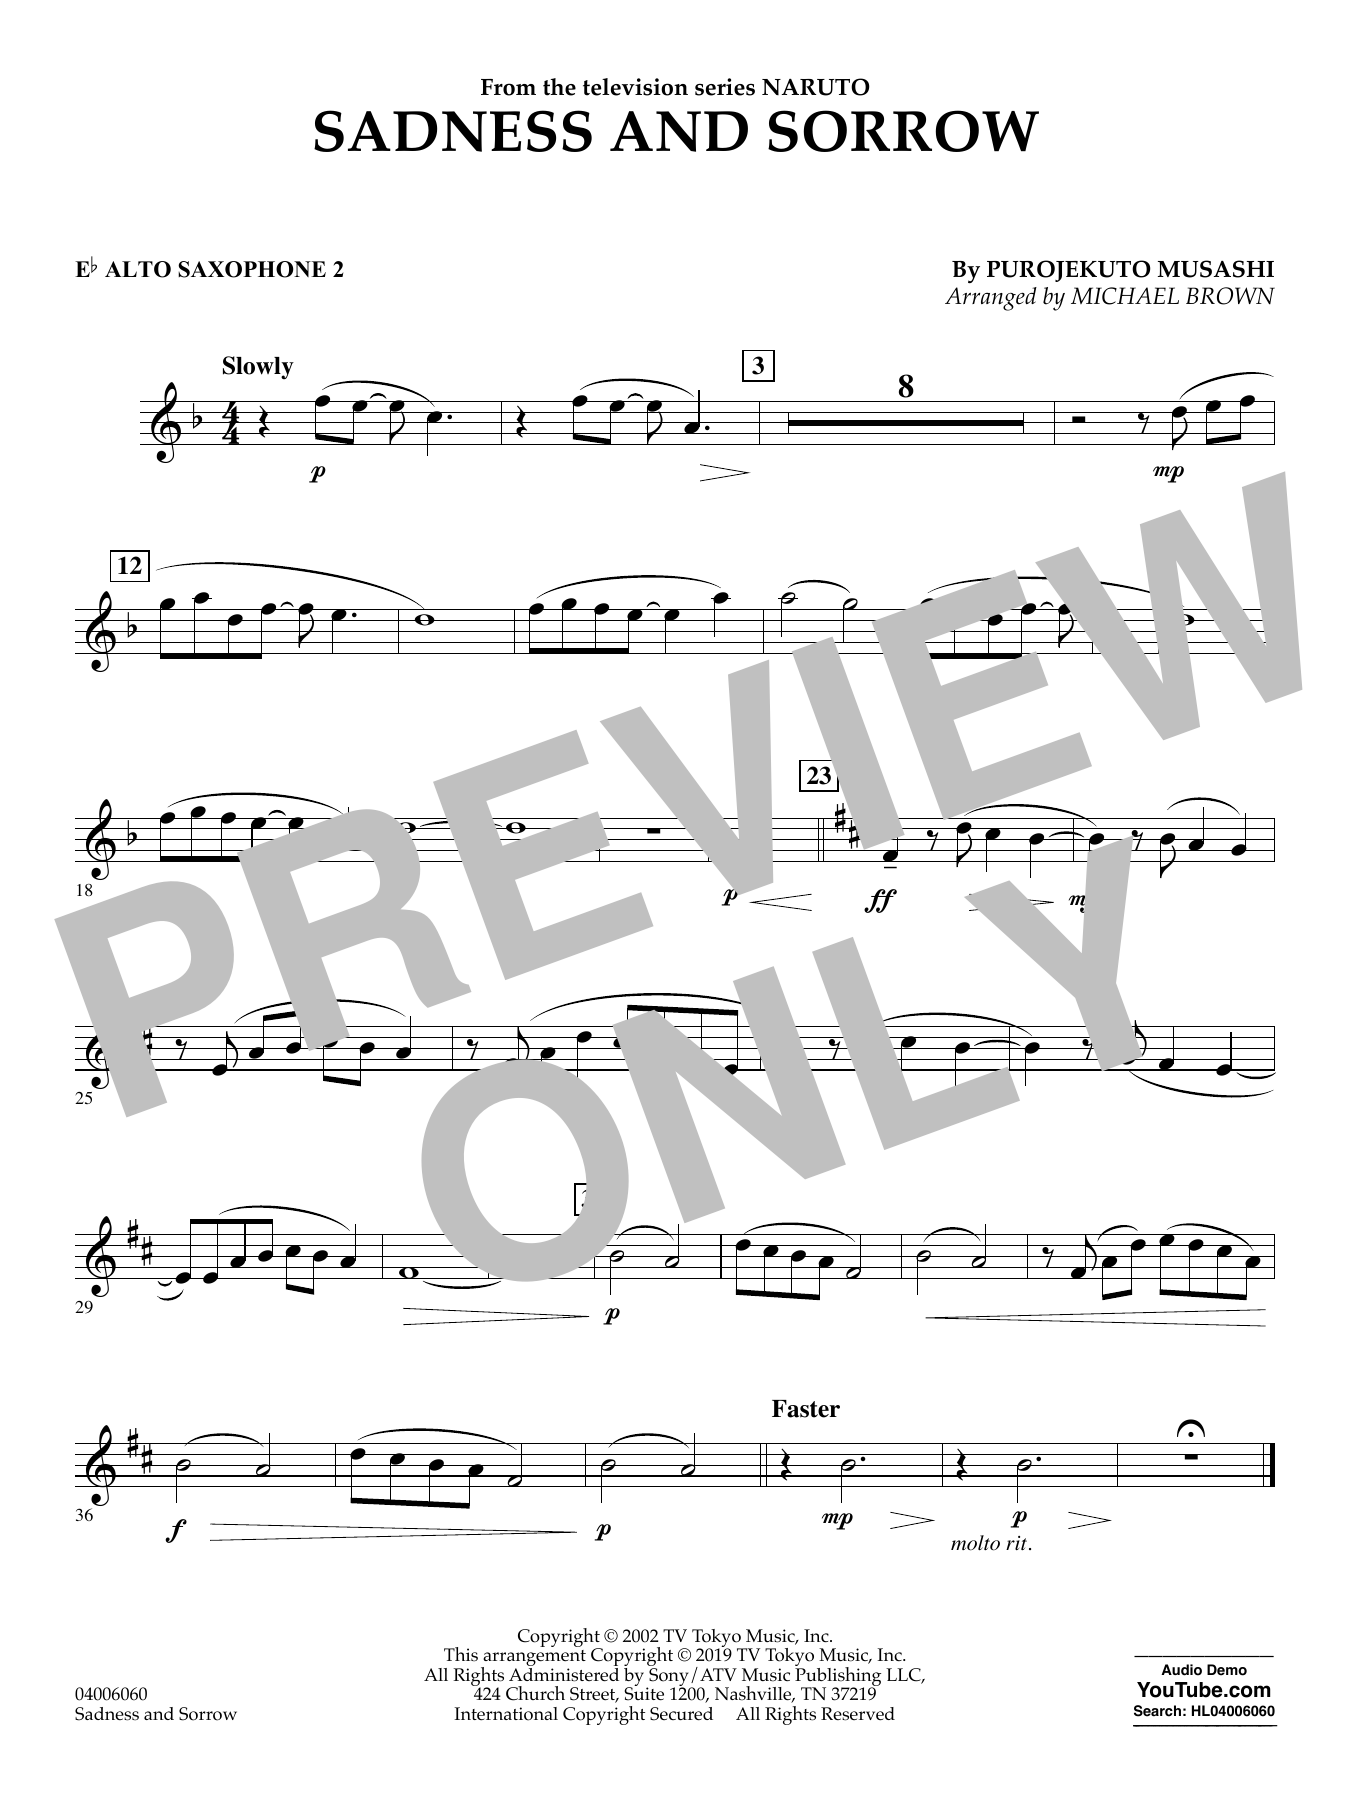 Taylor Davis Sadness and Sorrow (from Naruto) (arr. Michael Brown) - Eb Alto Saxophone 2 sheet music notes and chords. Download Printable PDF.